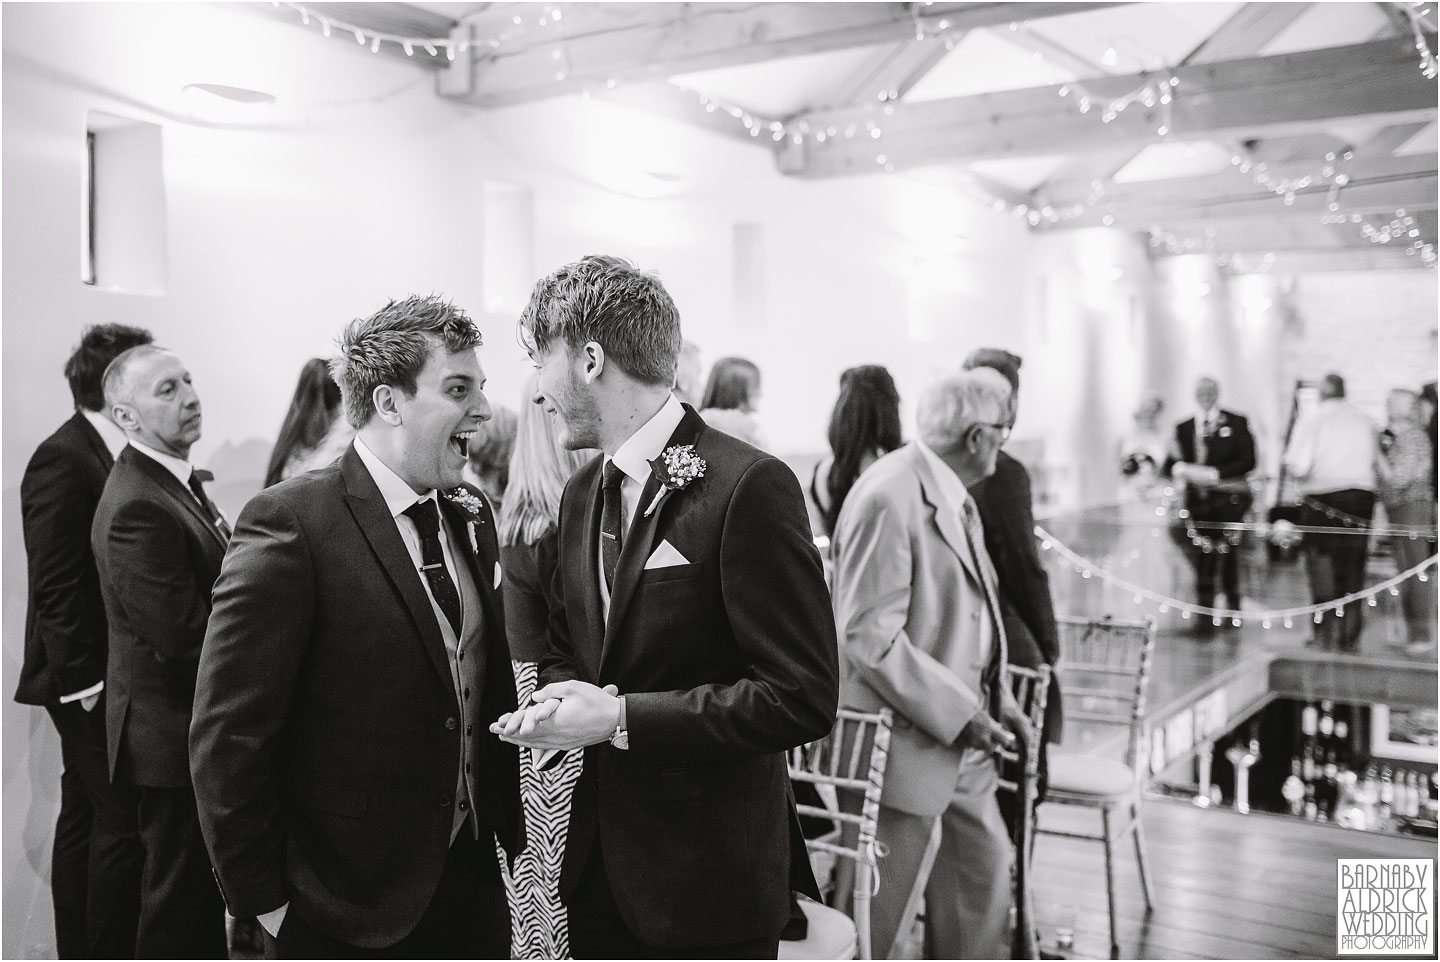 An excited groom turns to his best man to scream in glee at his wedding at Priory Cottages in Wetherby